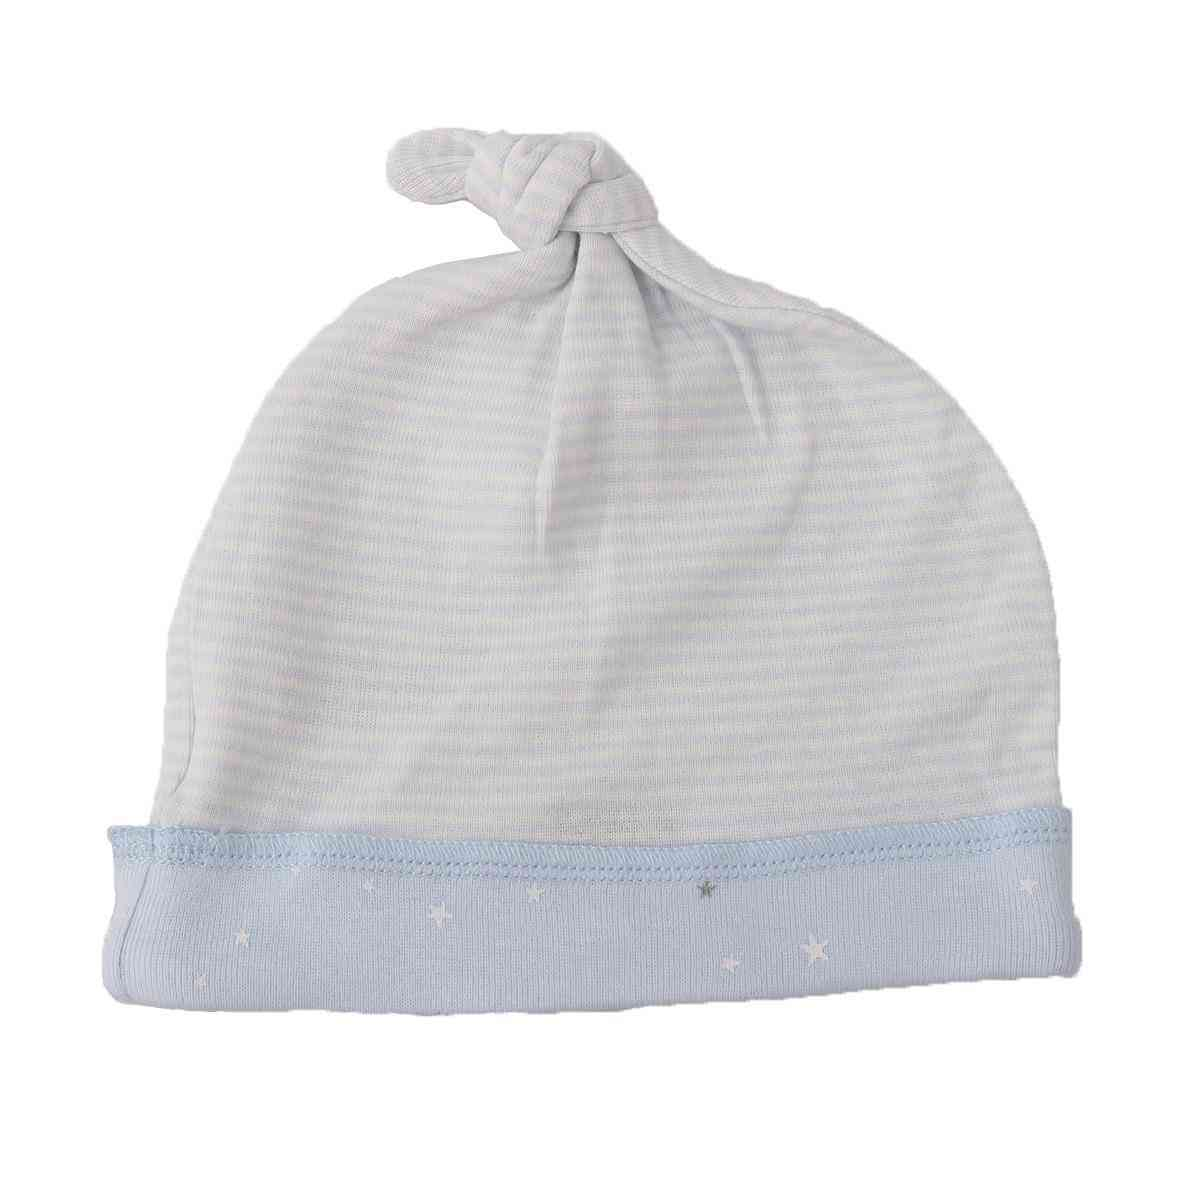 Asaan Bachpan Baby Cap for 0 - 6 Month Baby  Dark Blue